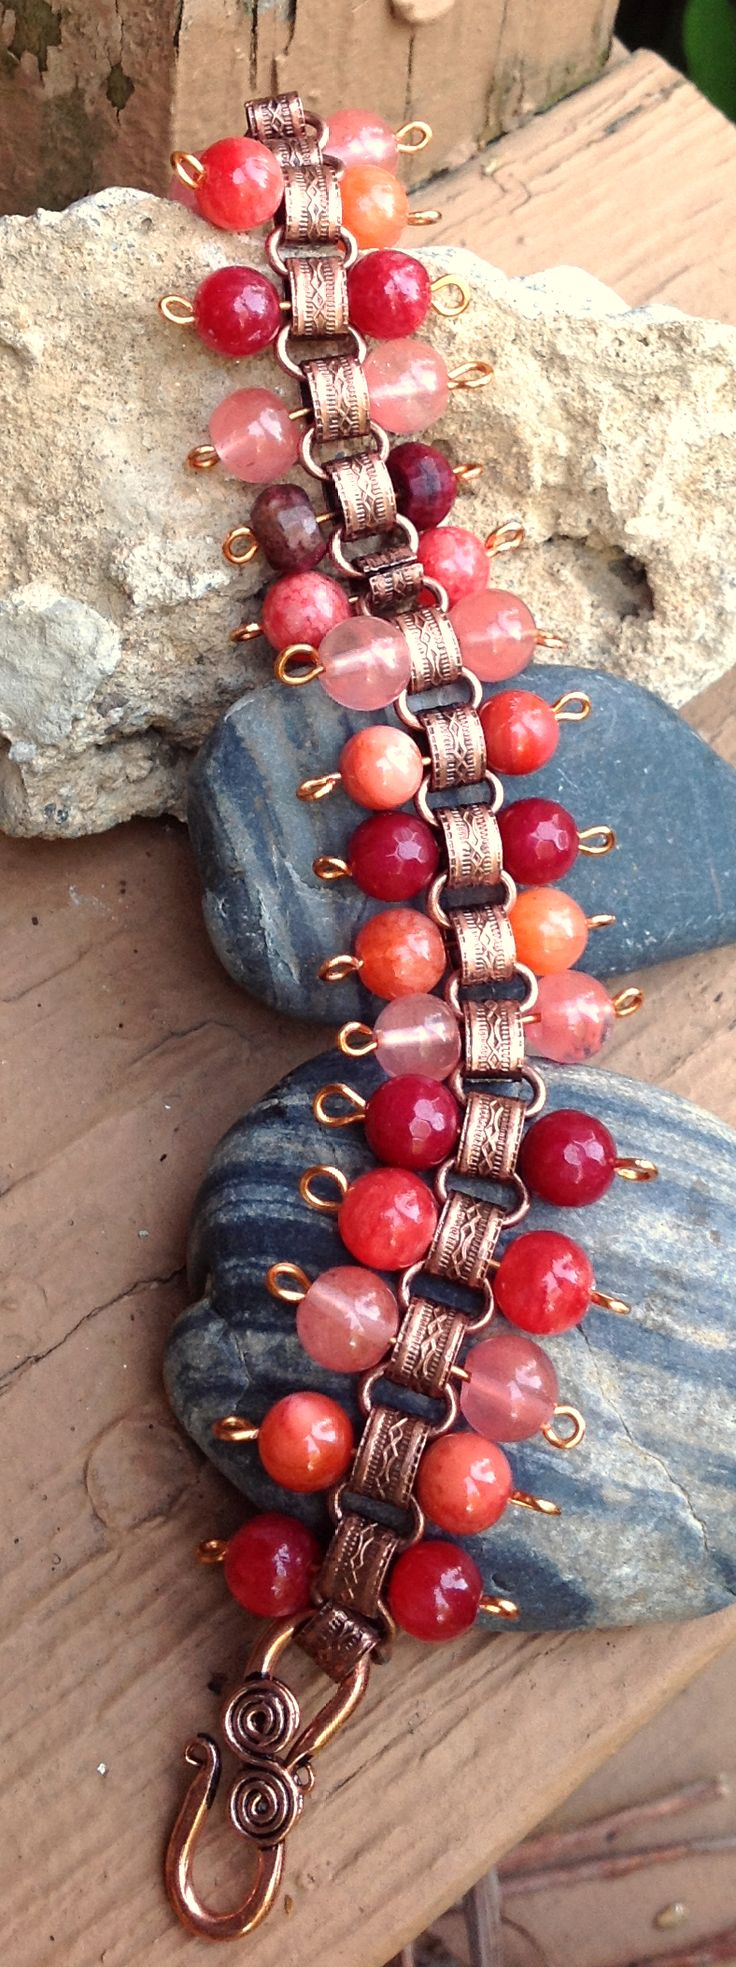 Bracelet with Peach, strawberry and merlot stones in copper